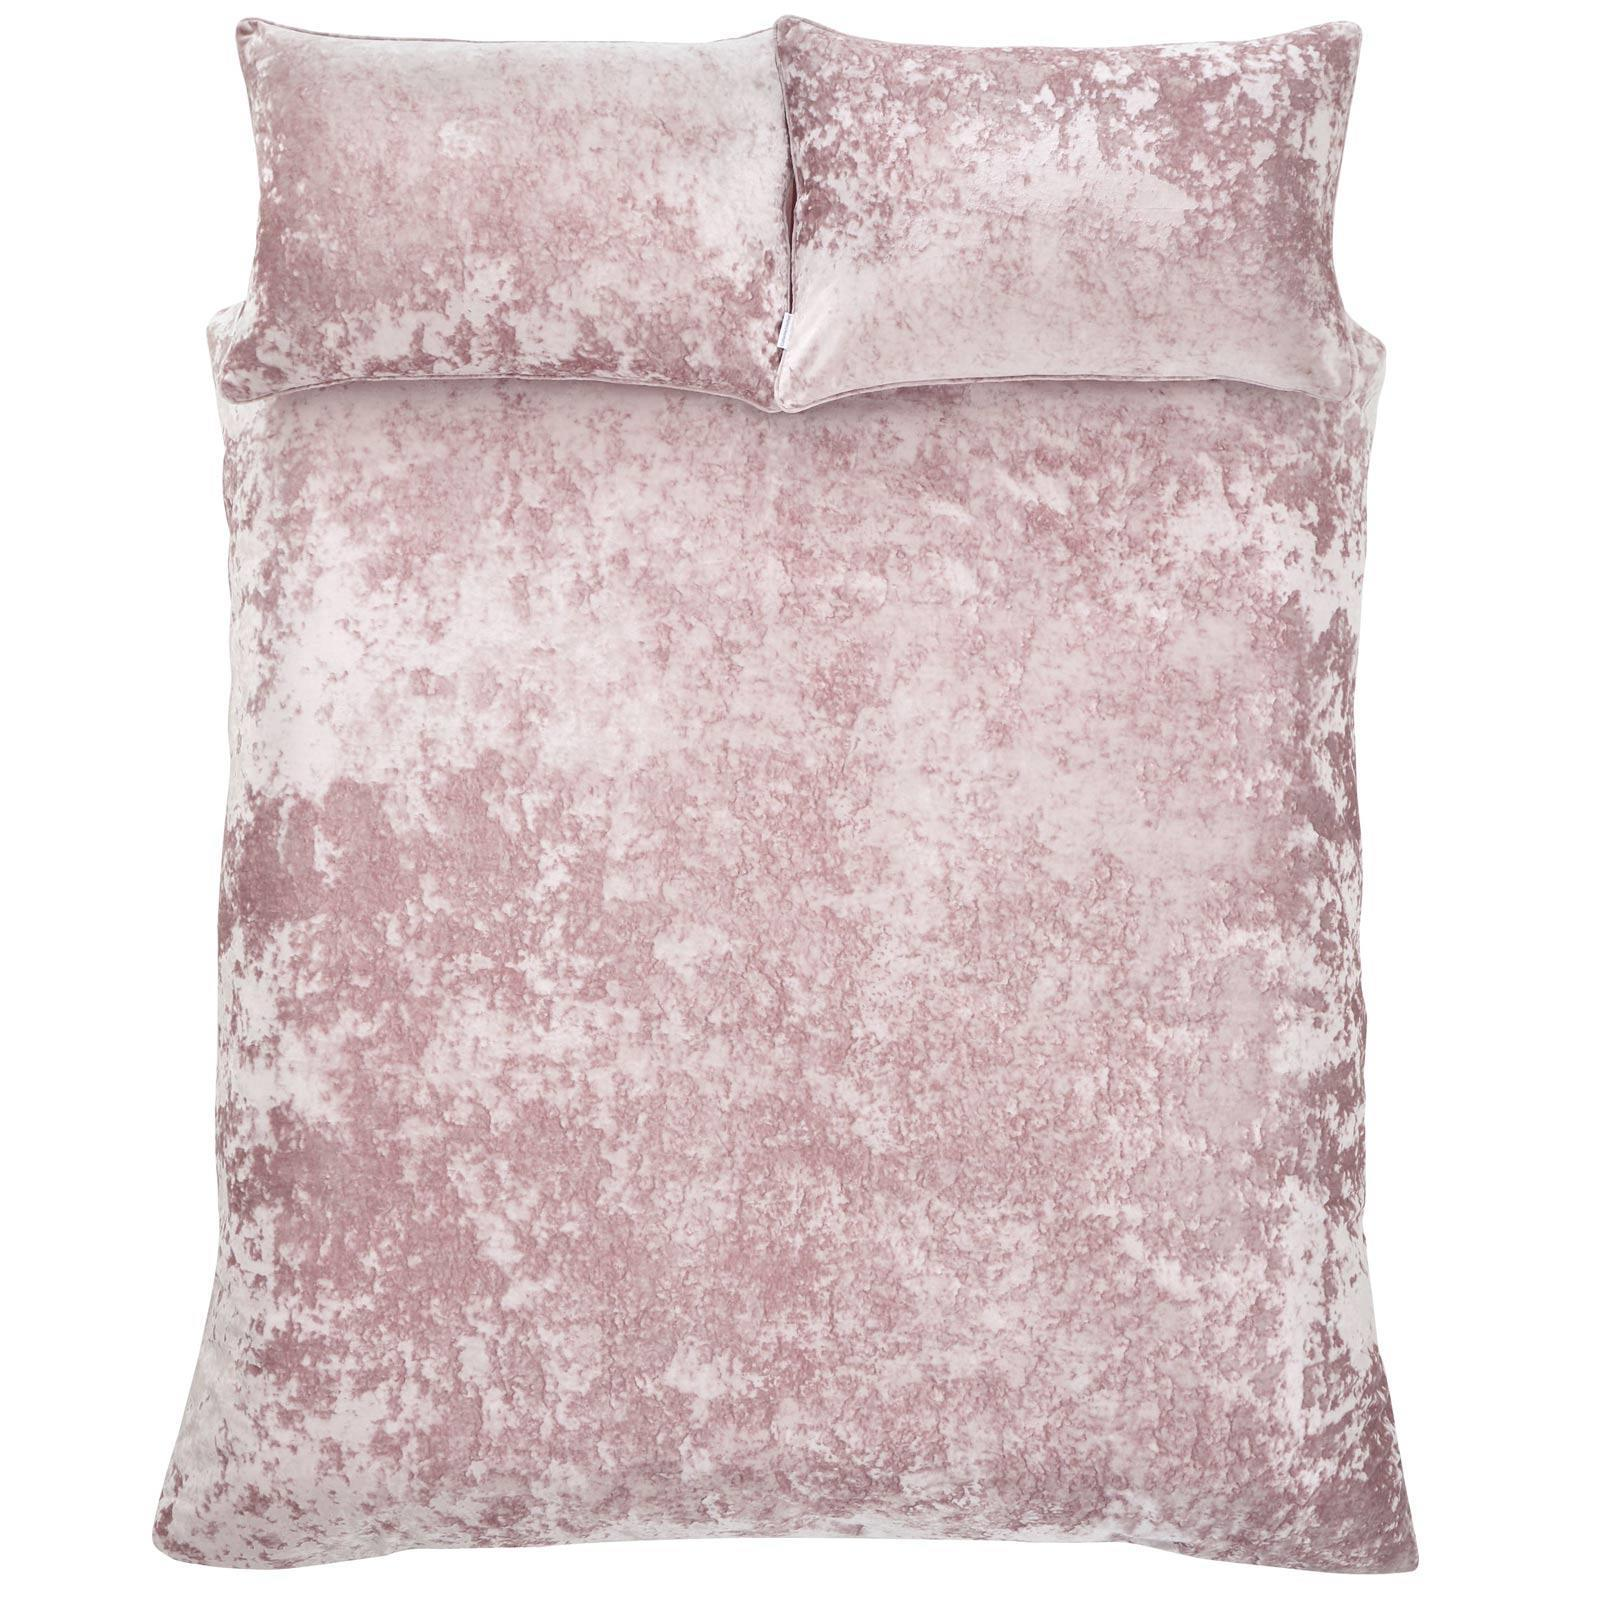 Catherine Lansfield Crushed Velvet Duvet Cover Set Curtains Throw Blush Pink